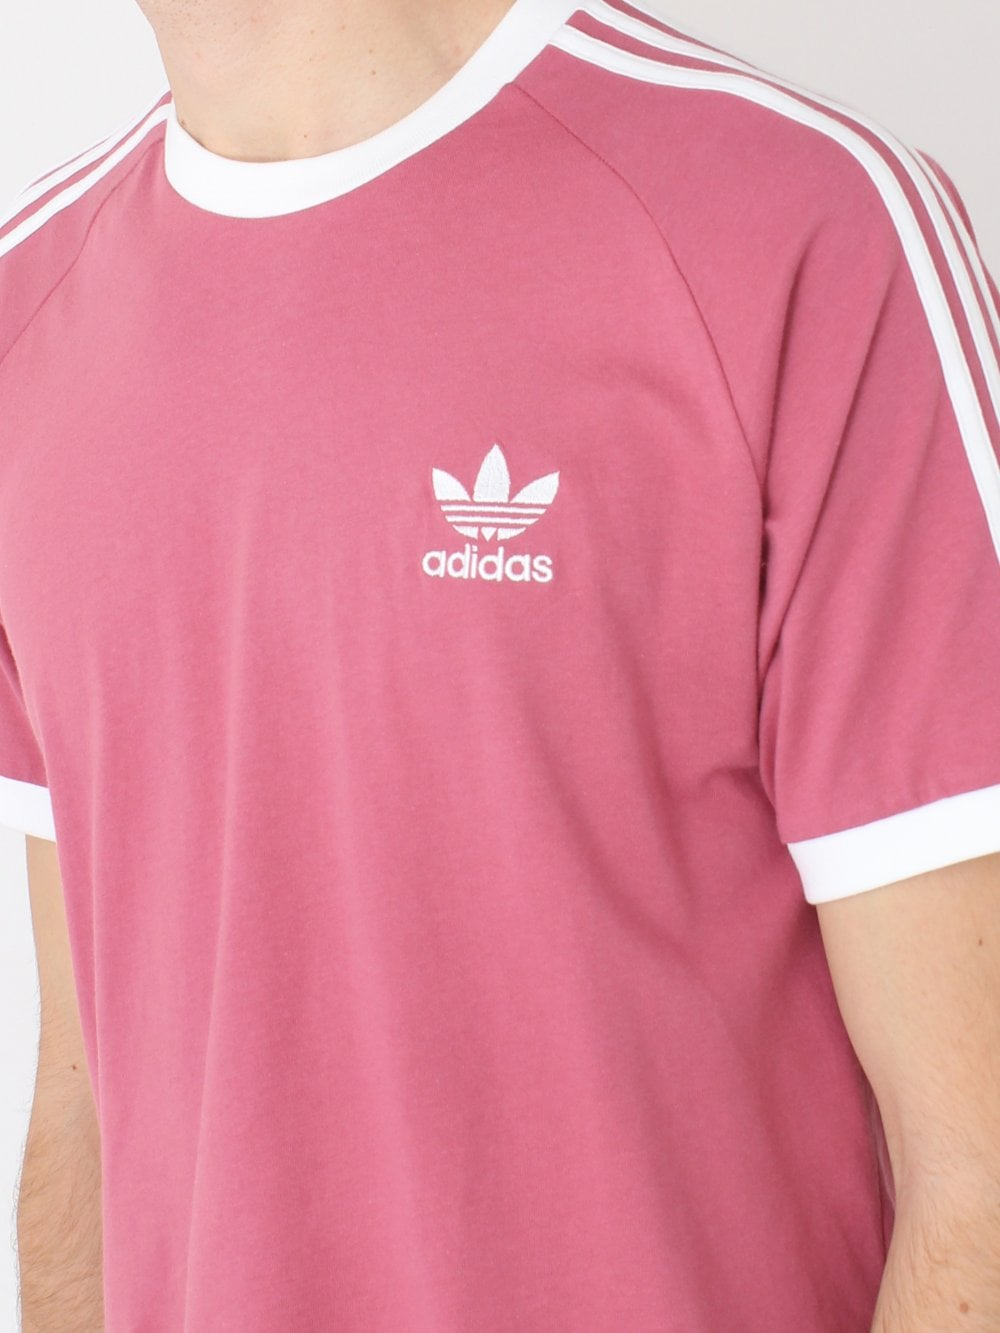 46cf2d36a9 Adidas 3 Stripes T.Shirt in Pink Mist | Northern Threads